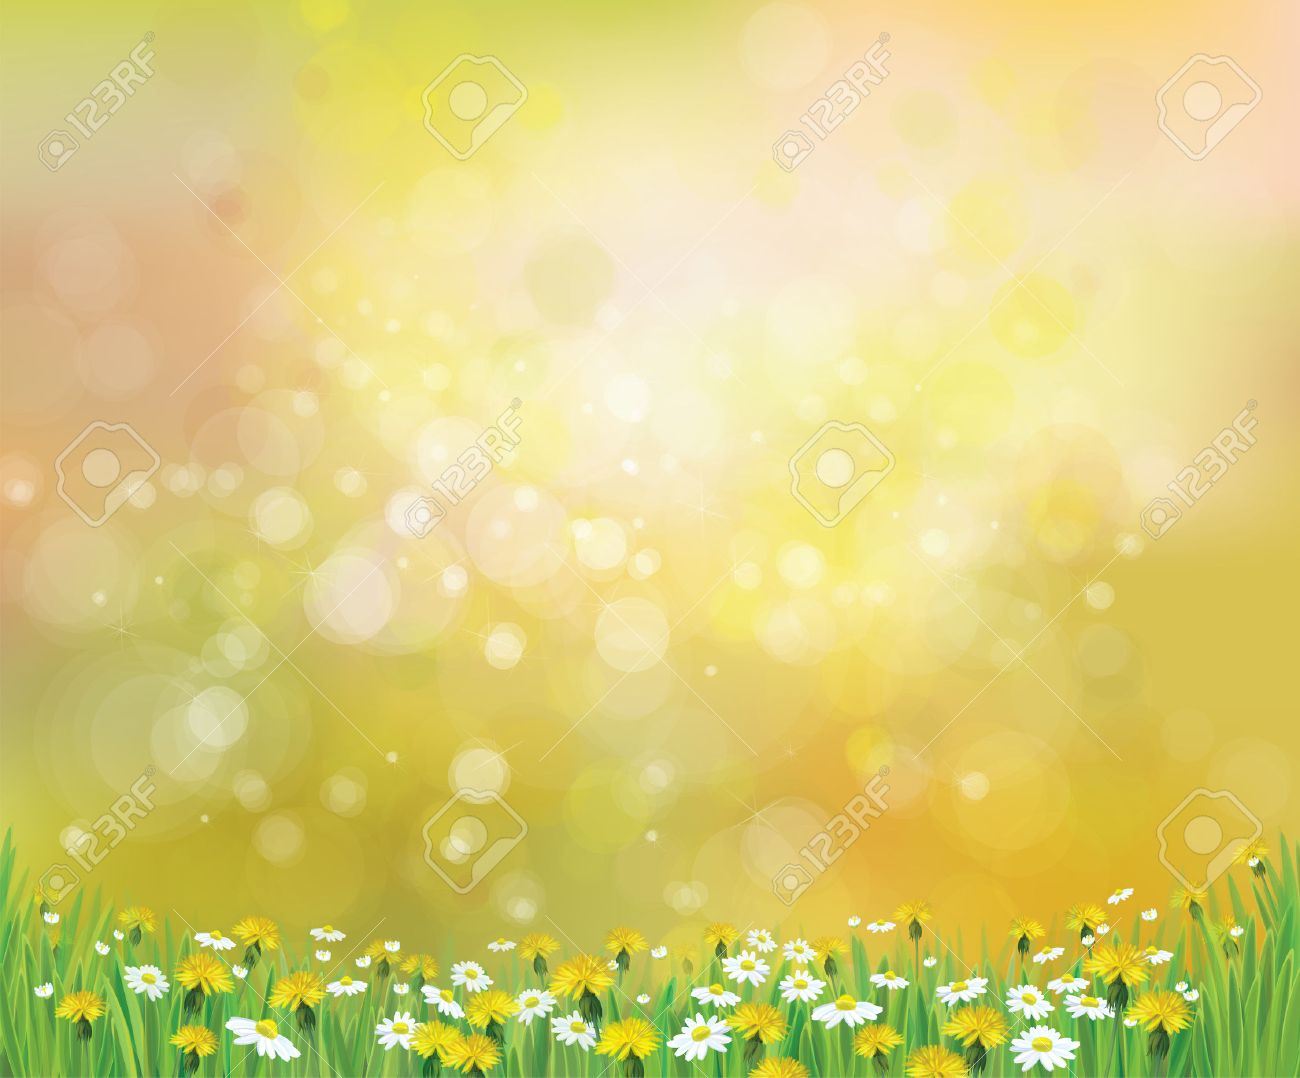 Vector Nature Spring Background With Chamomile And Dandelions 1300x1078